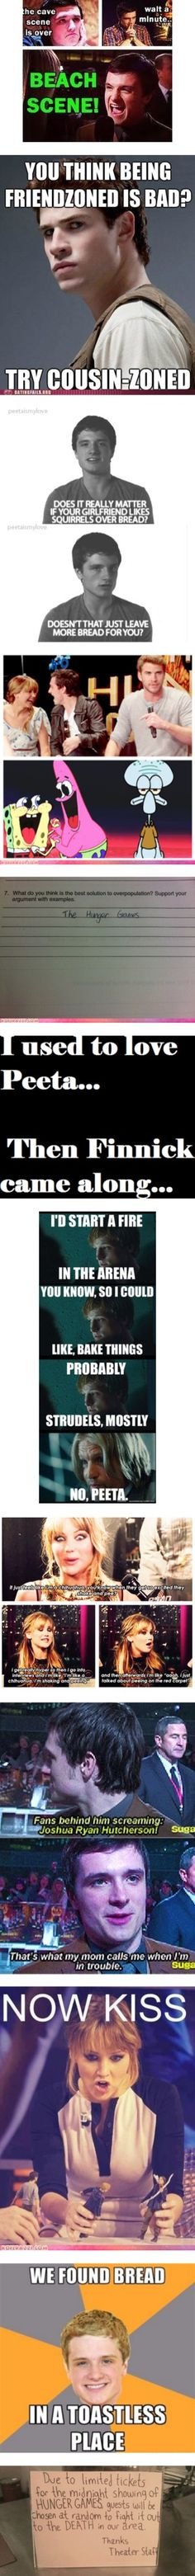 This. the hunger, book, funny hunger games, funni hunger, awesom, hunger games humor, bakers, beach scenes, hunger games cast